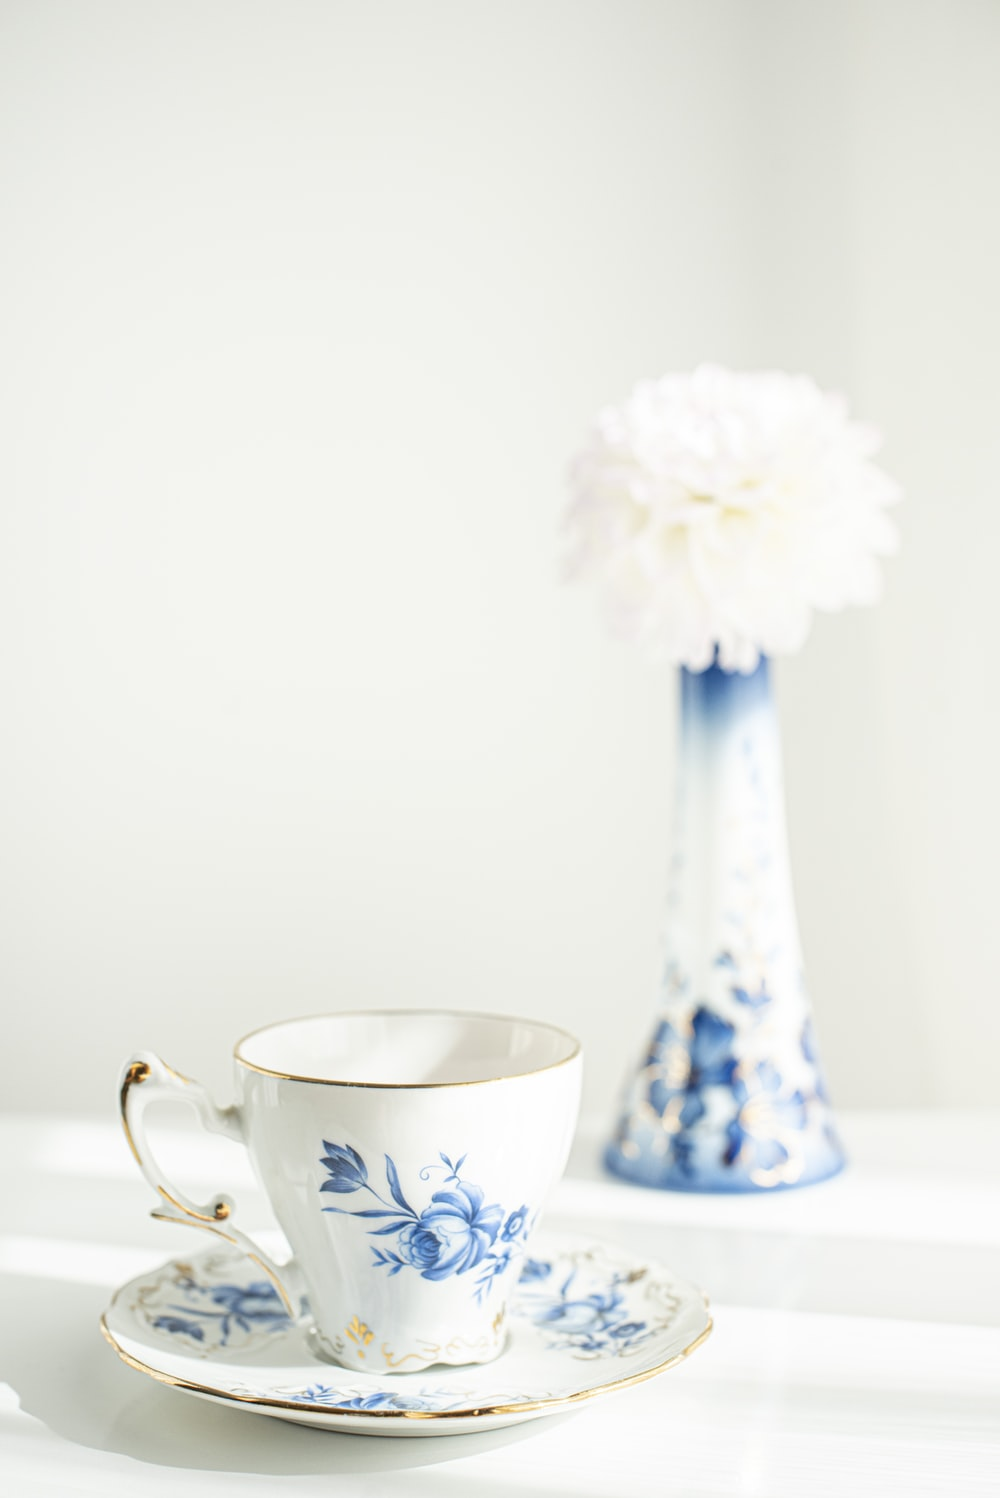 white and blue floral ceramic teacup with white flower